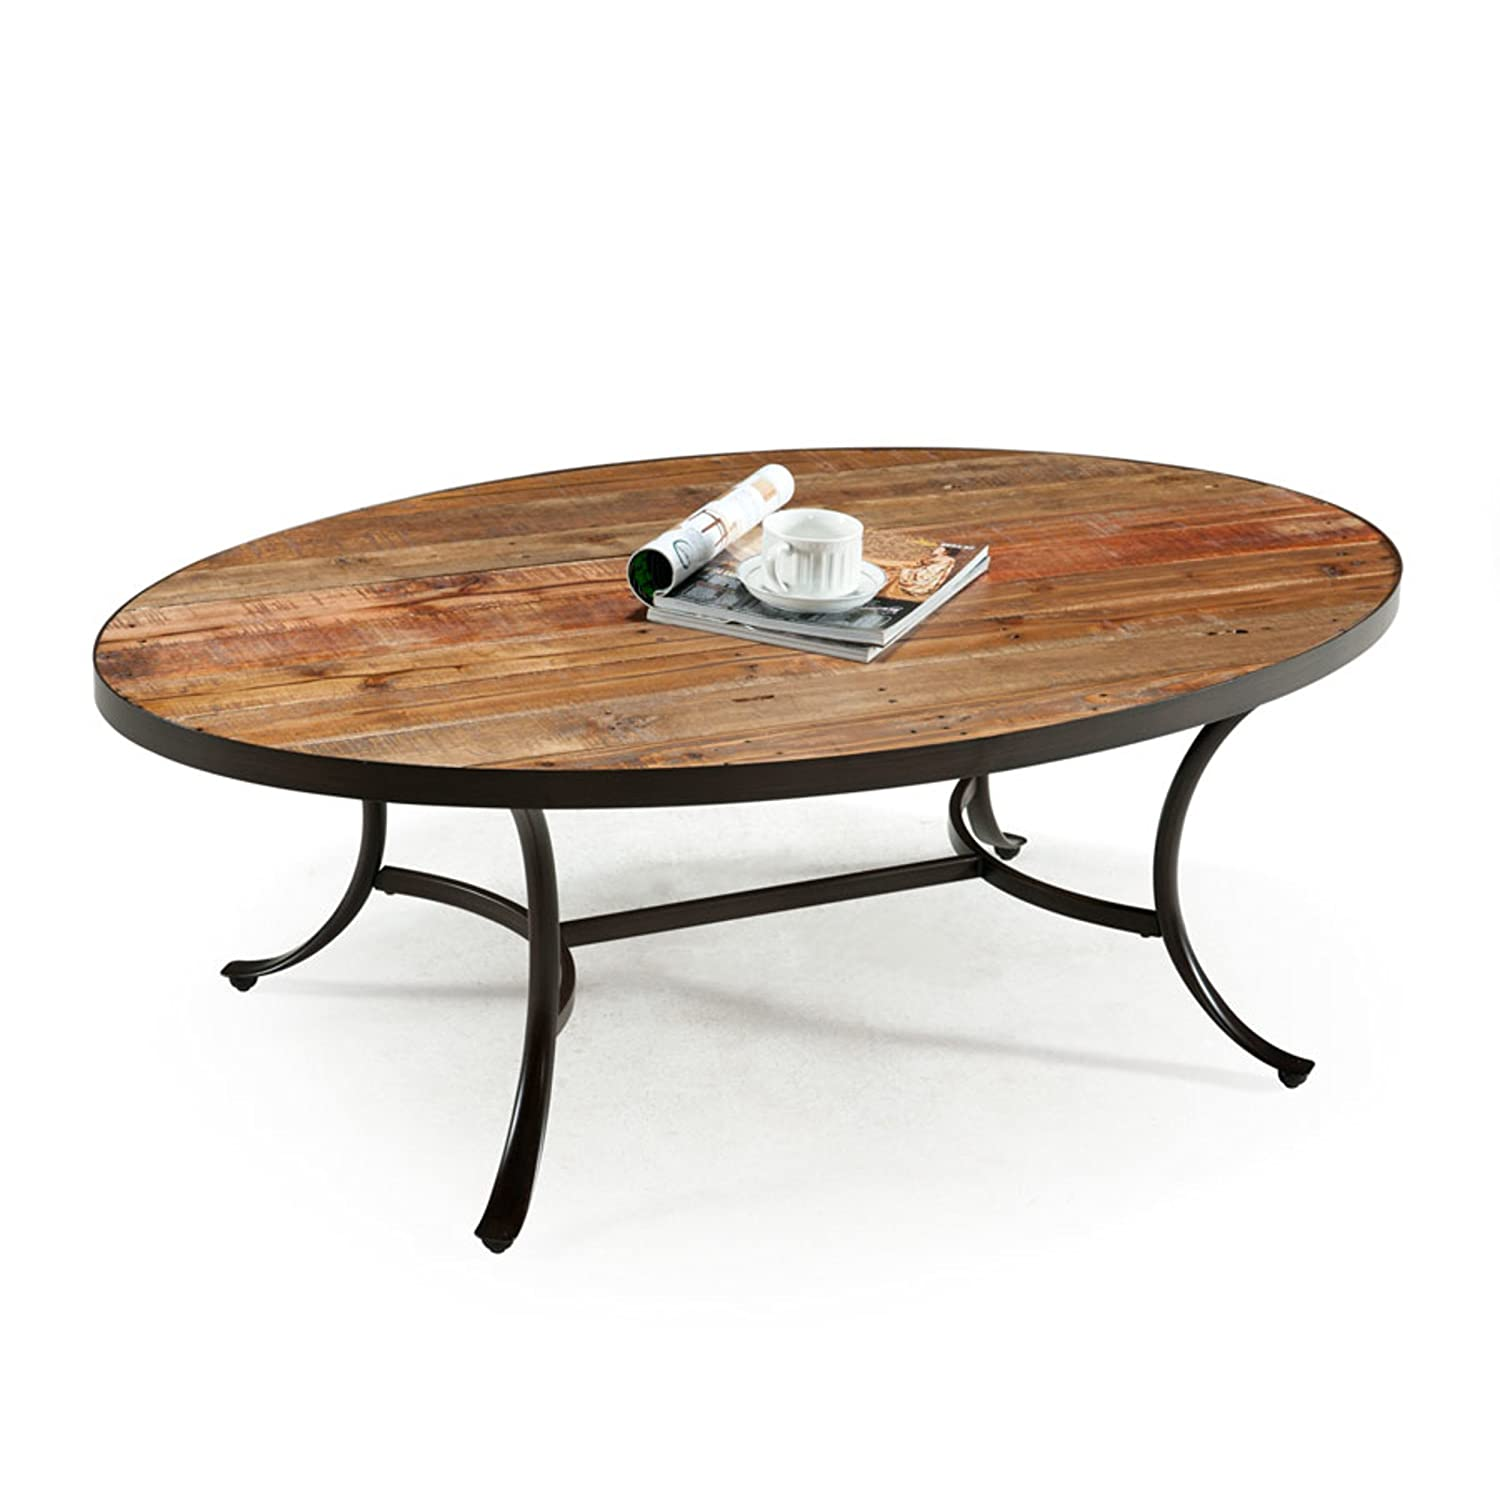 Amazon Emerald Home Rustic Wood Coffee Table with Oval Top